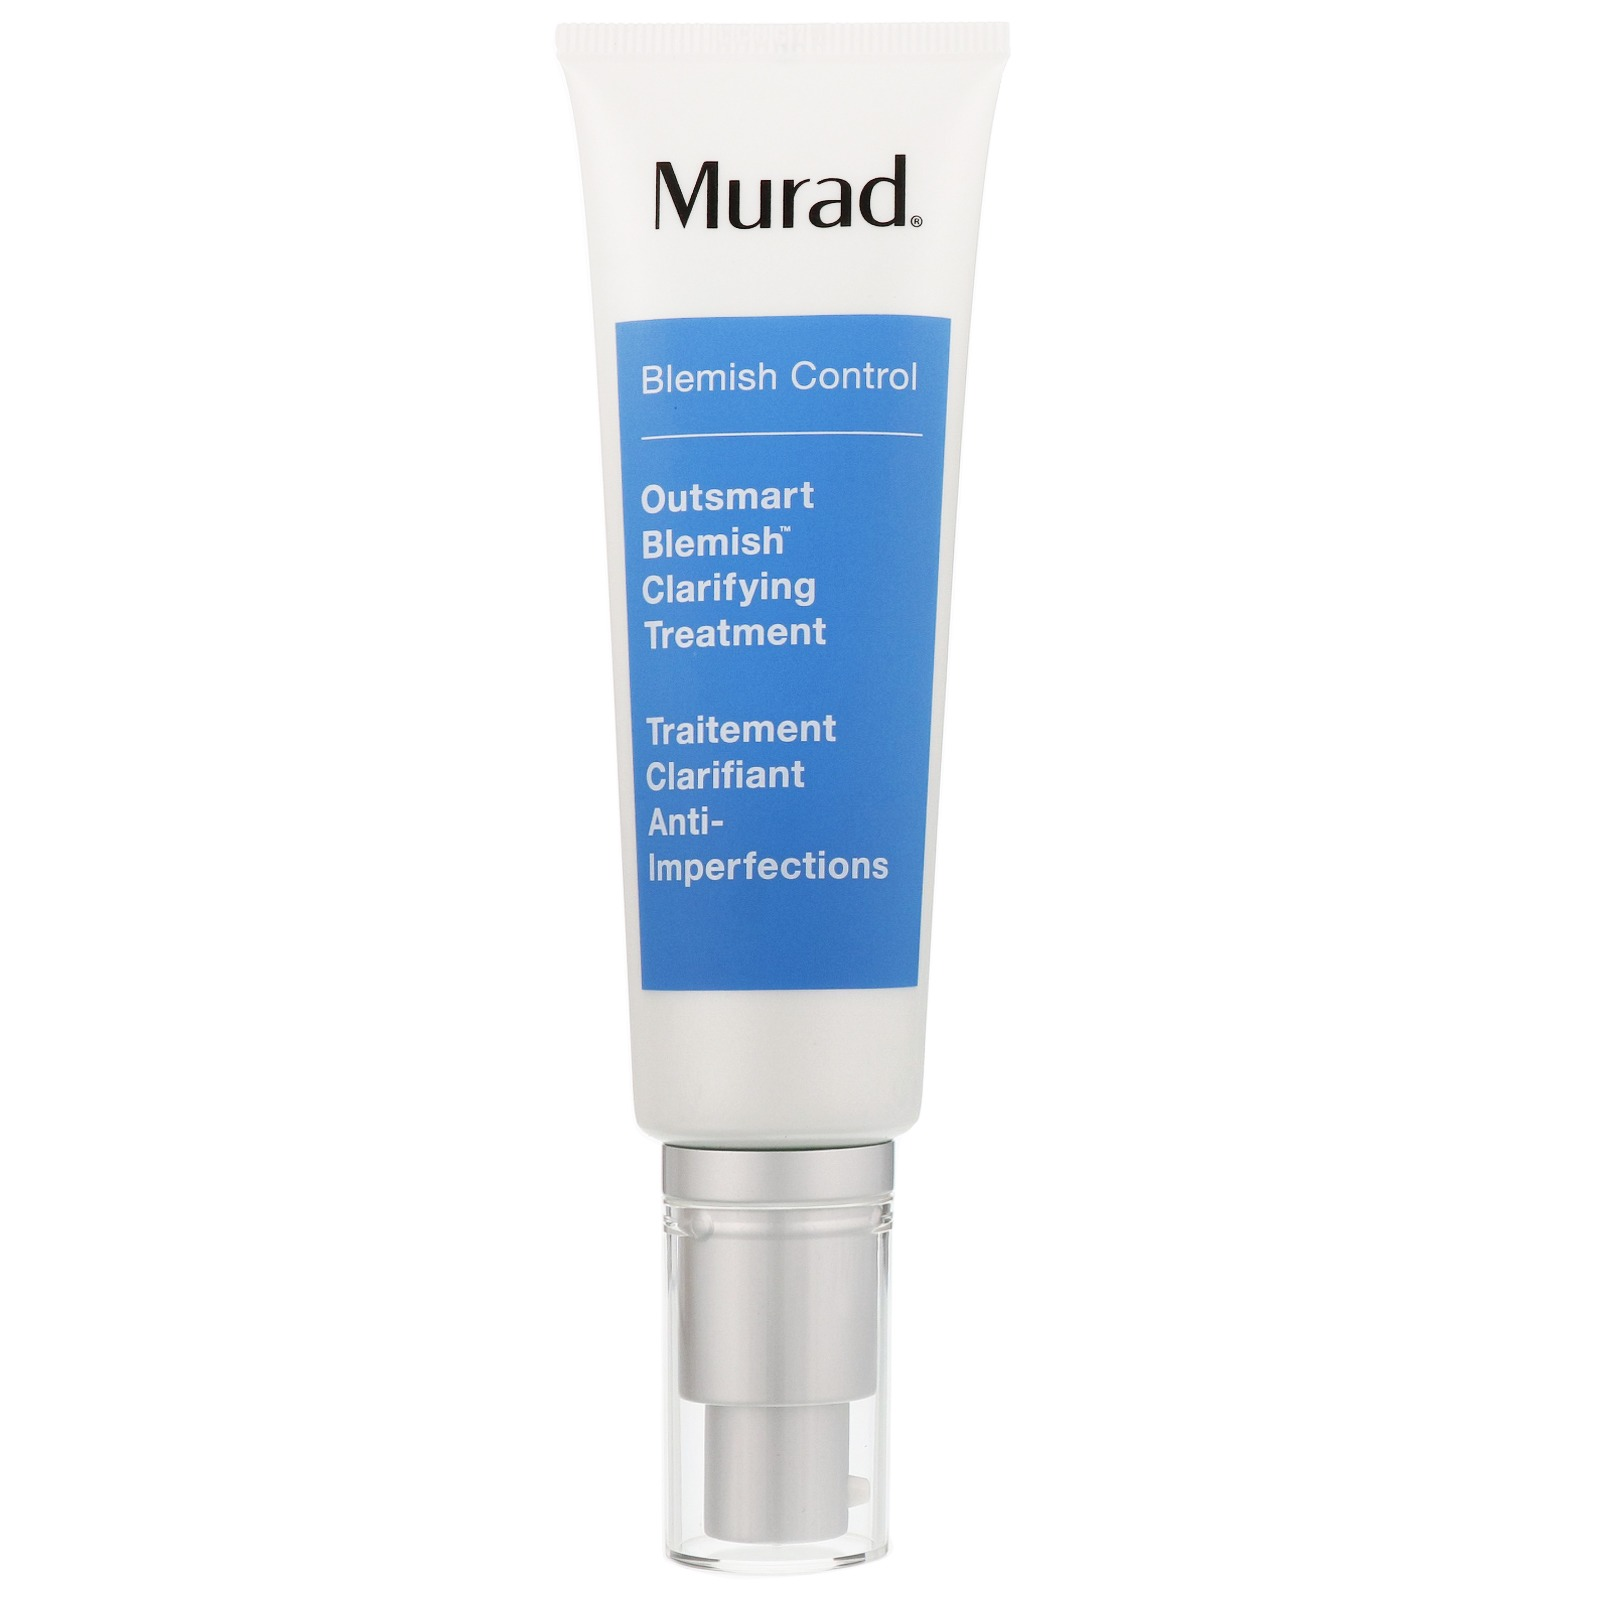 Murad Blemish Control Outsmart Blemish Clarifying Treatment 50ml